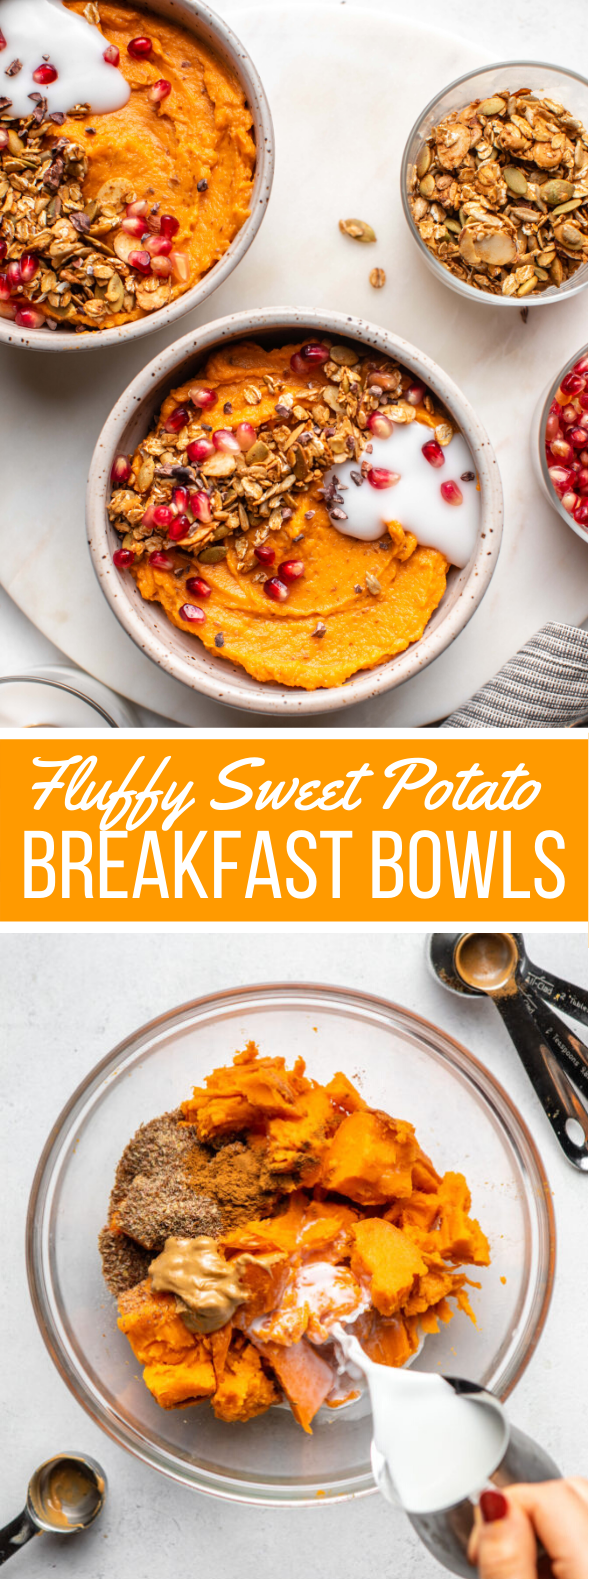 FLUFFY SWEET POTATO BREAKFAST BOWLS – VEGAN & GRAIN FREE #vegetarian #glutenfree